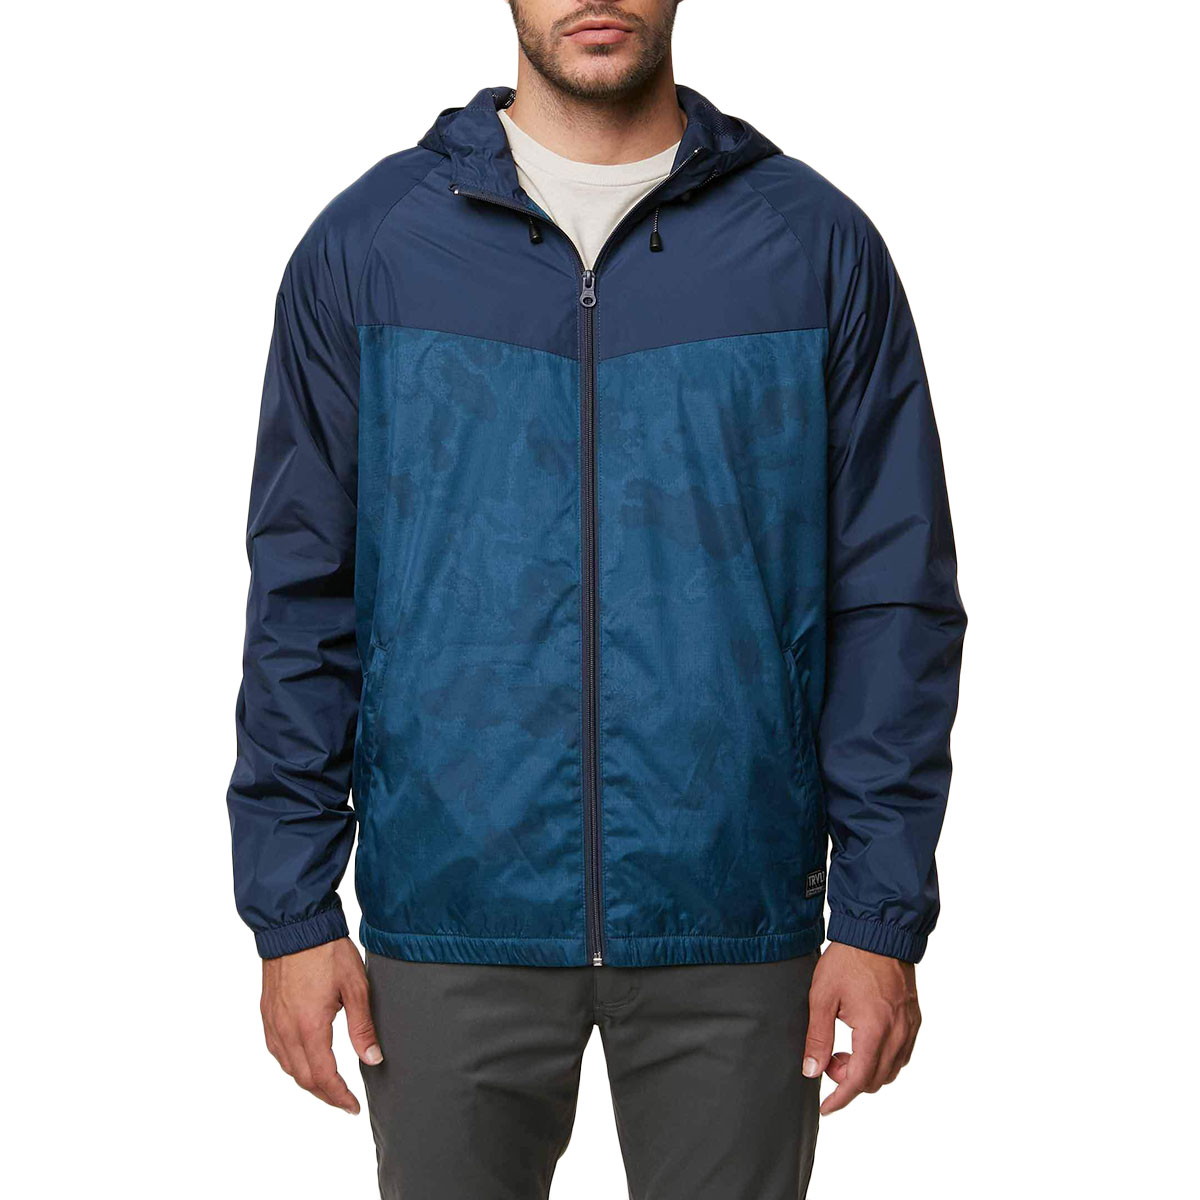 O'neill Guys' Traveler Windbreaker Jacket - Blue, XL